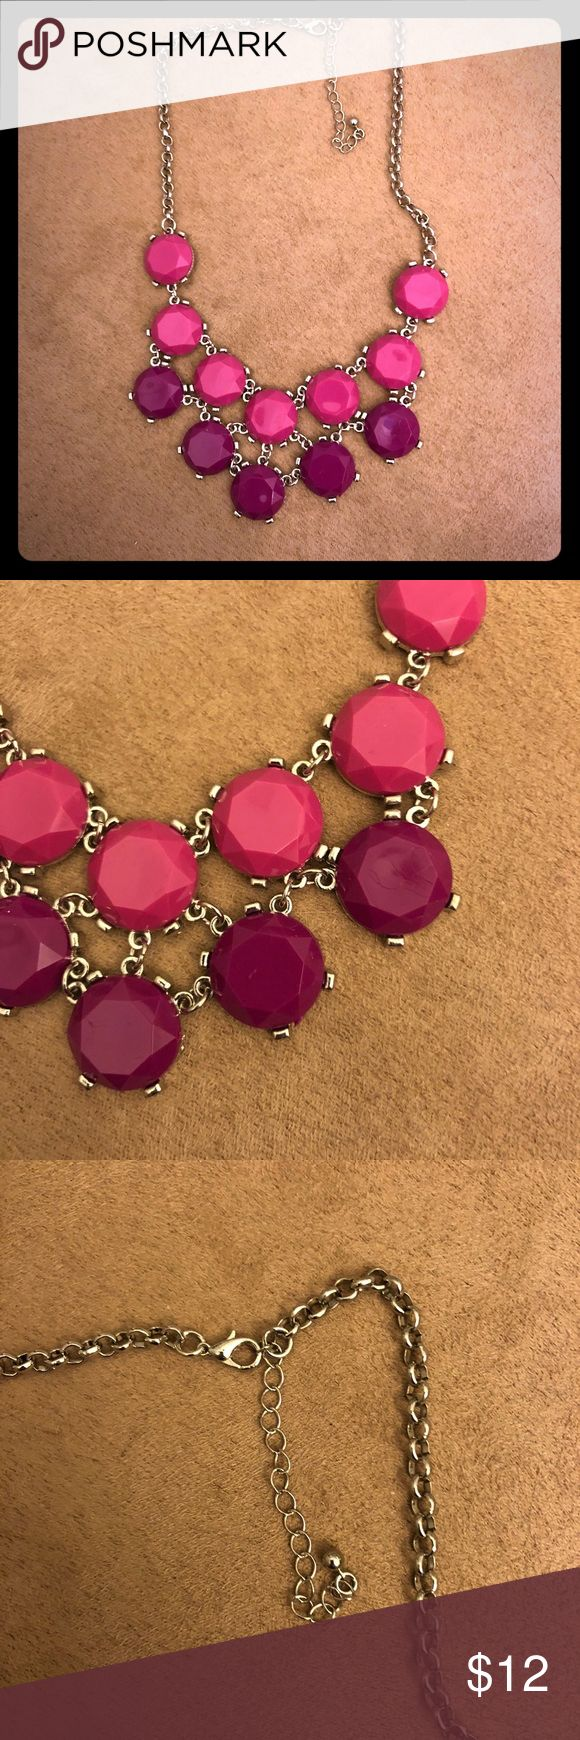 Pink & Purple Statement Necklace NWOT Pink and Purple Statement Necklace, standard clasp closing Silver accents Jewelry Necklaces